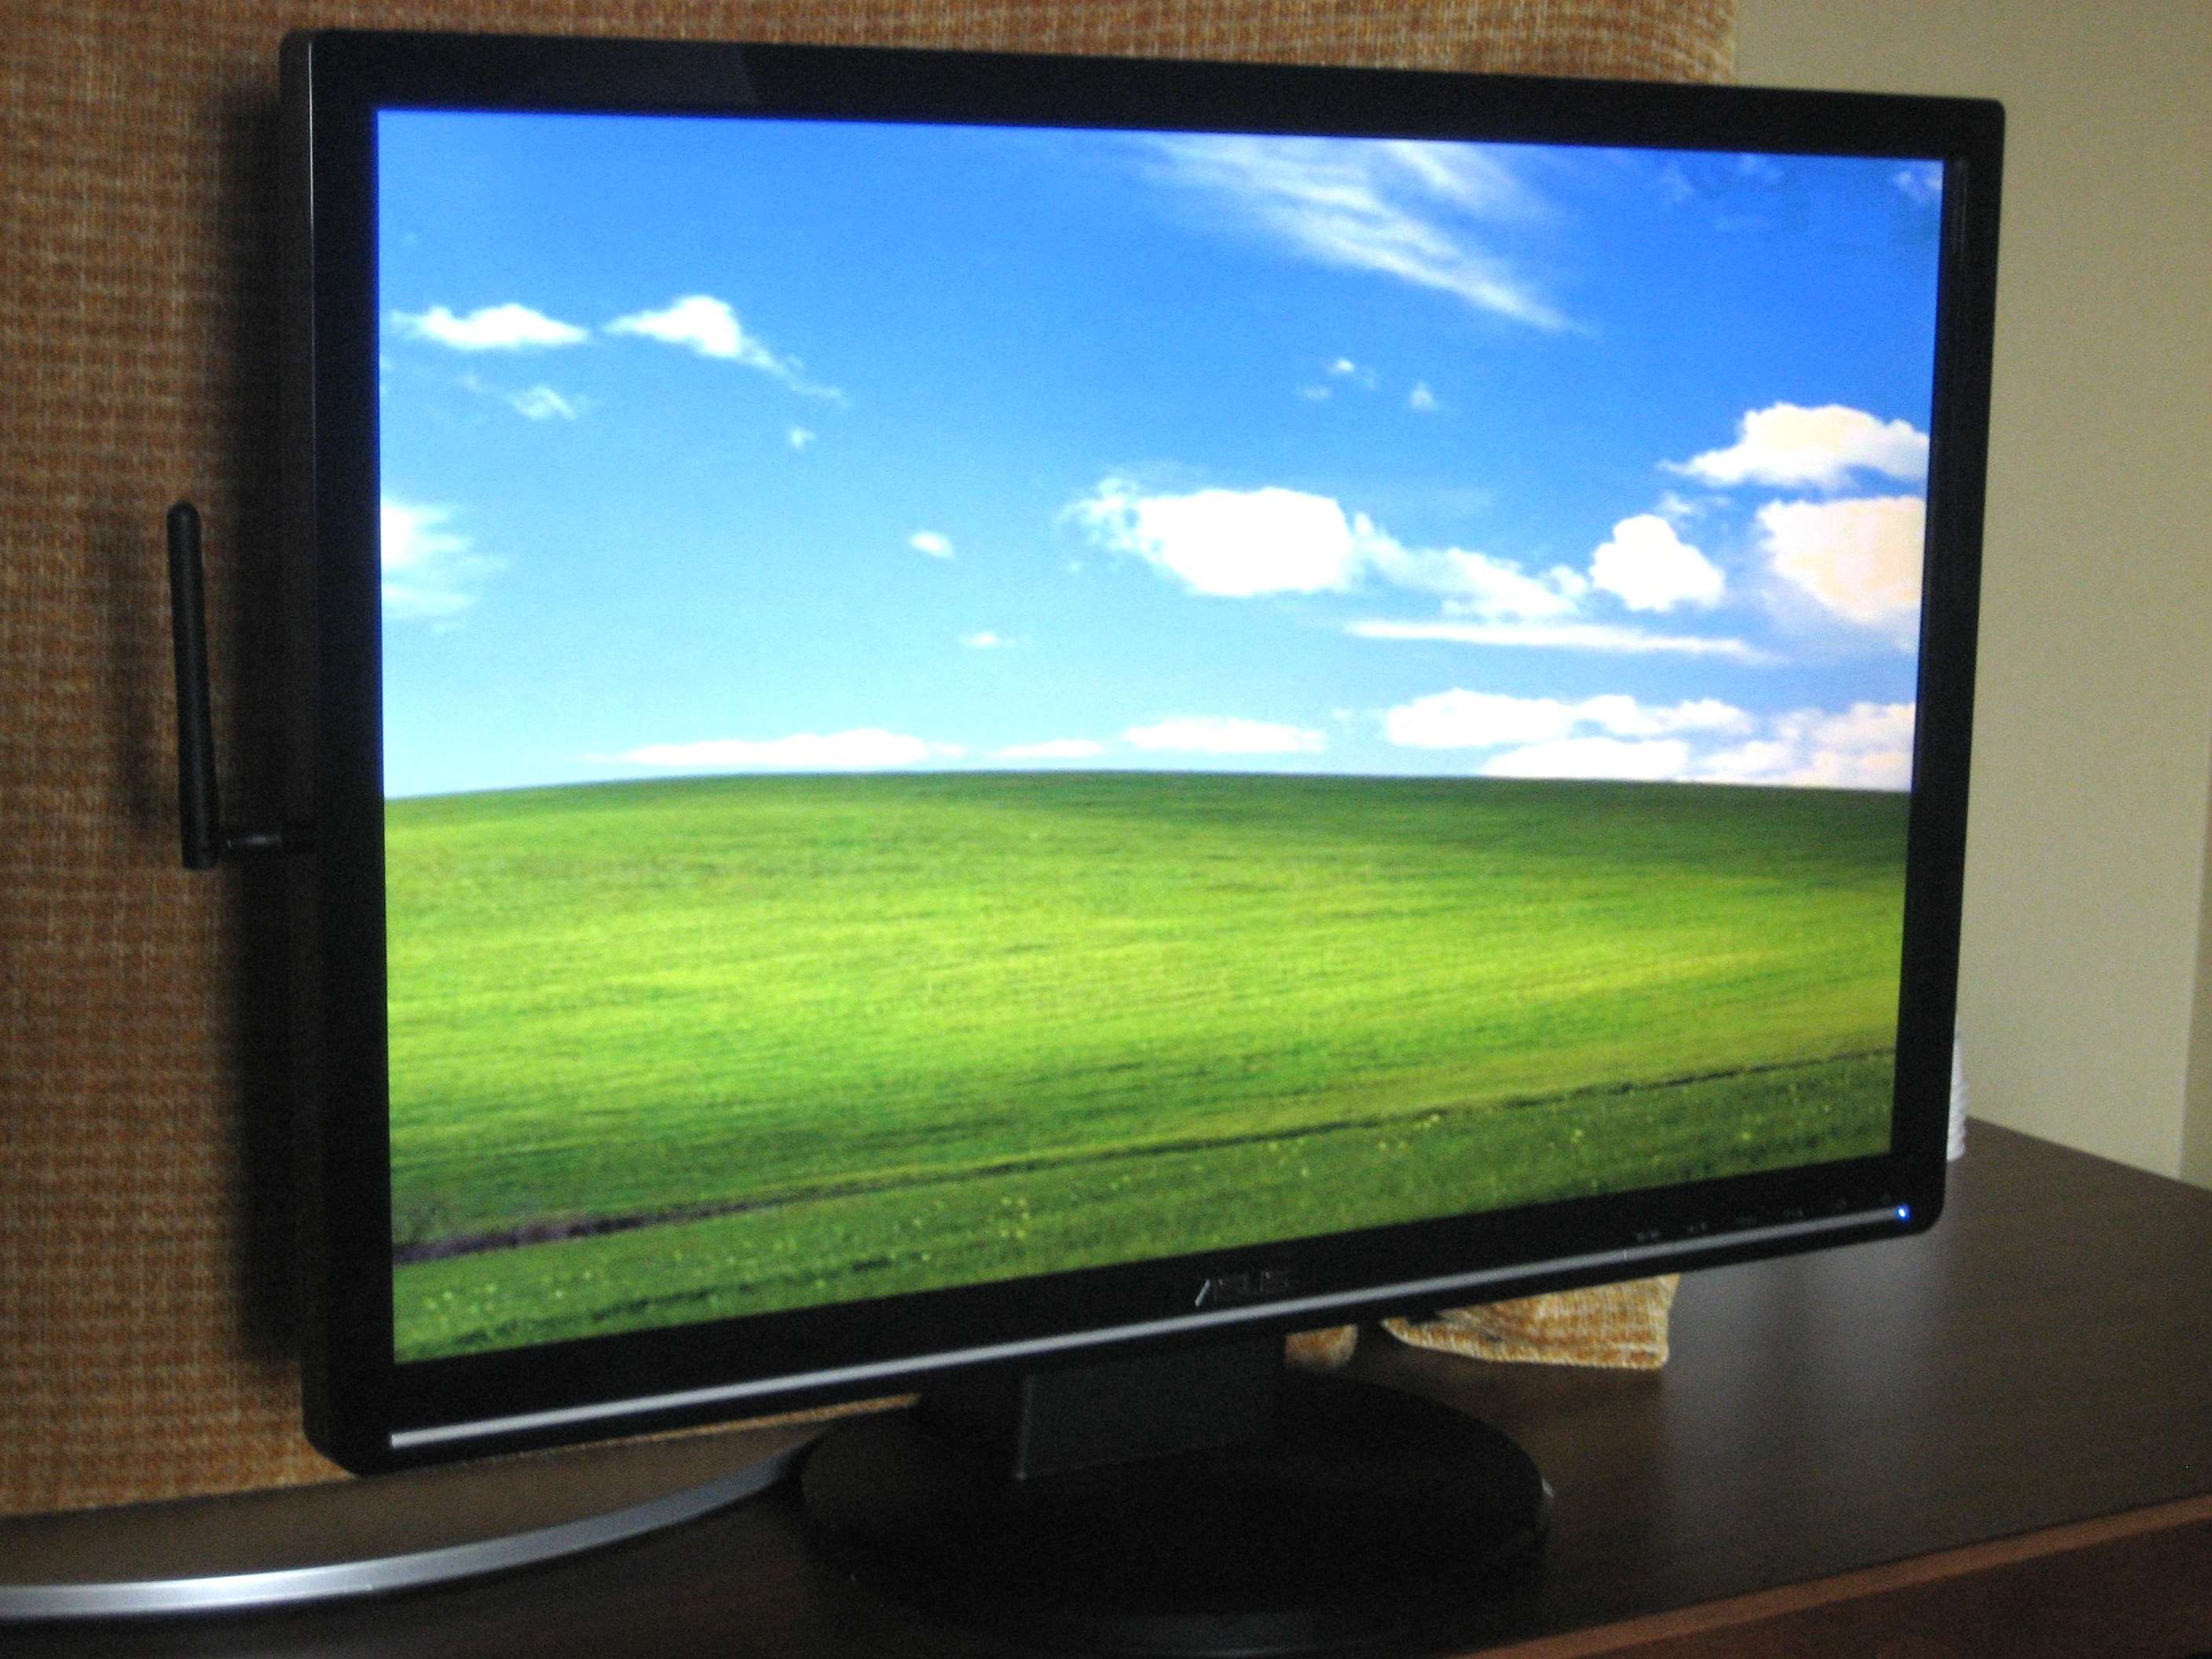 Asus monitor with wireless USB capability